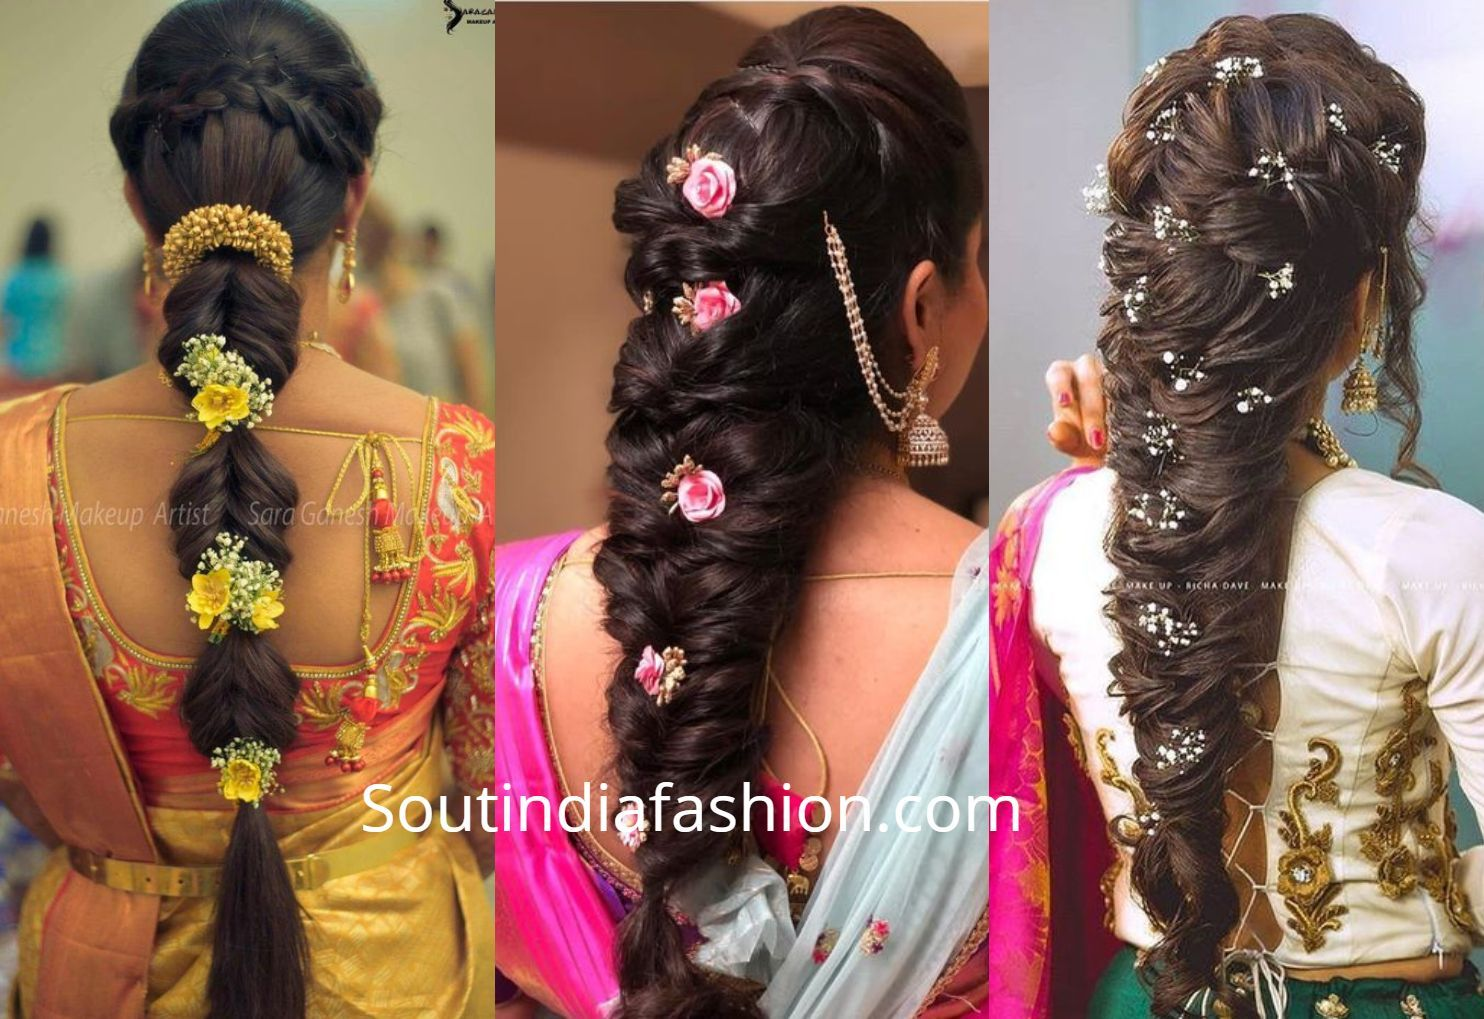 Top 10 South Indian Bridal Hairstyles For Weddings Engagement Etc In 2020 Wedding Hairstyles For Long Hair Bridal Hairstyle For Reception Engagement Hairstyles